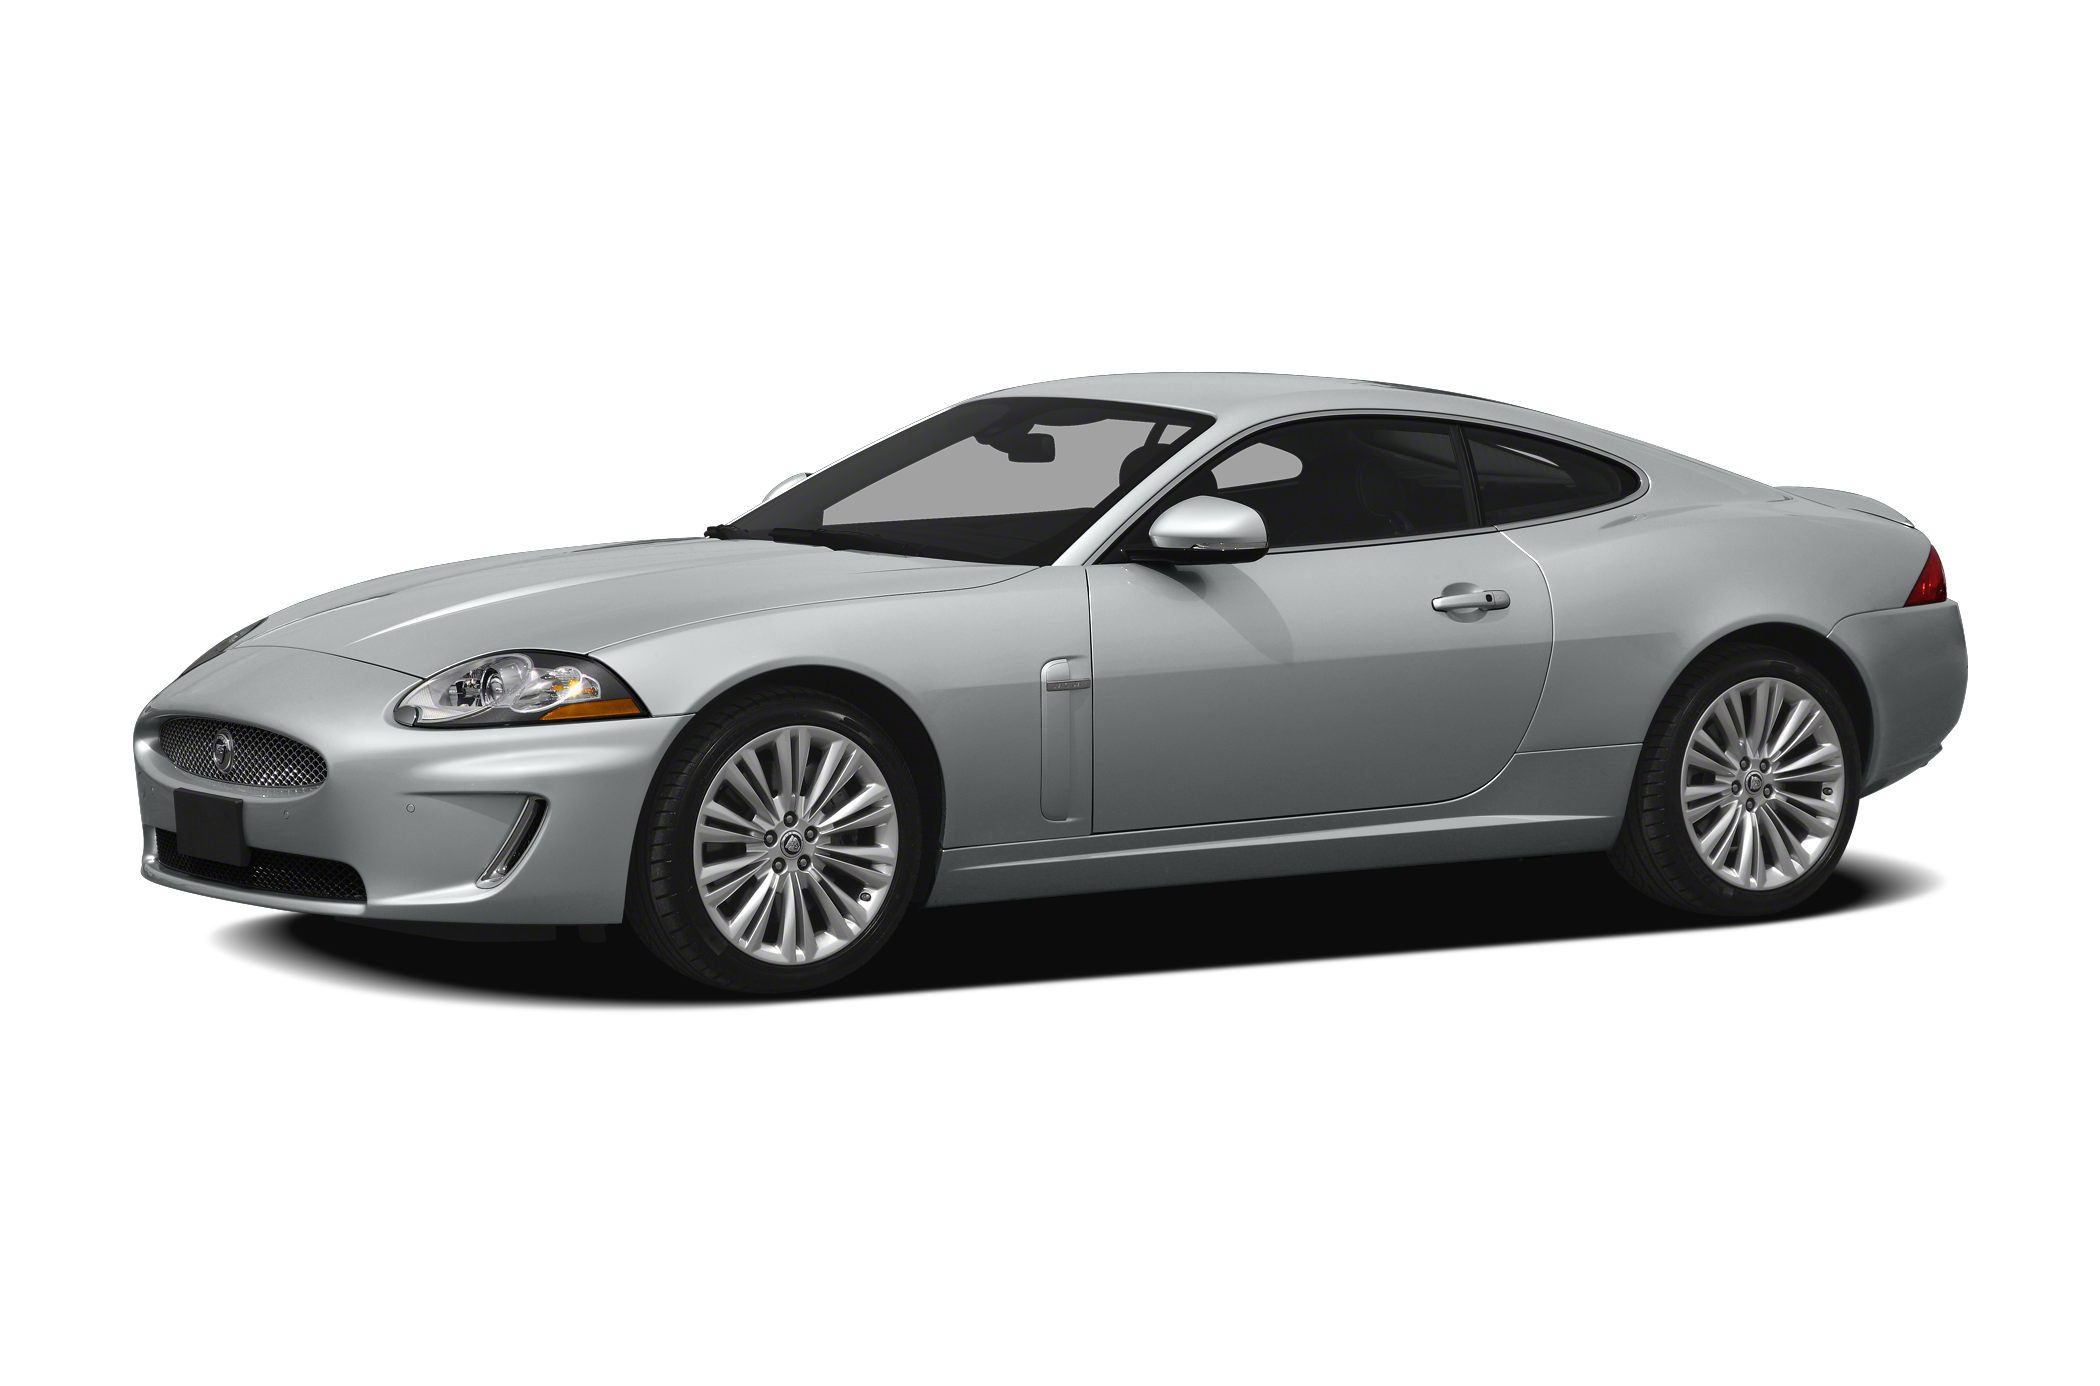 2011 Jaguar XK Base Convertible for sale in Hatboro for $55,999 with 16,583 miles.